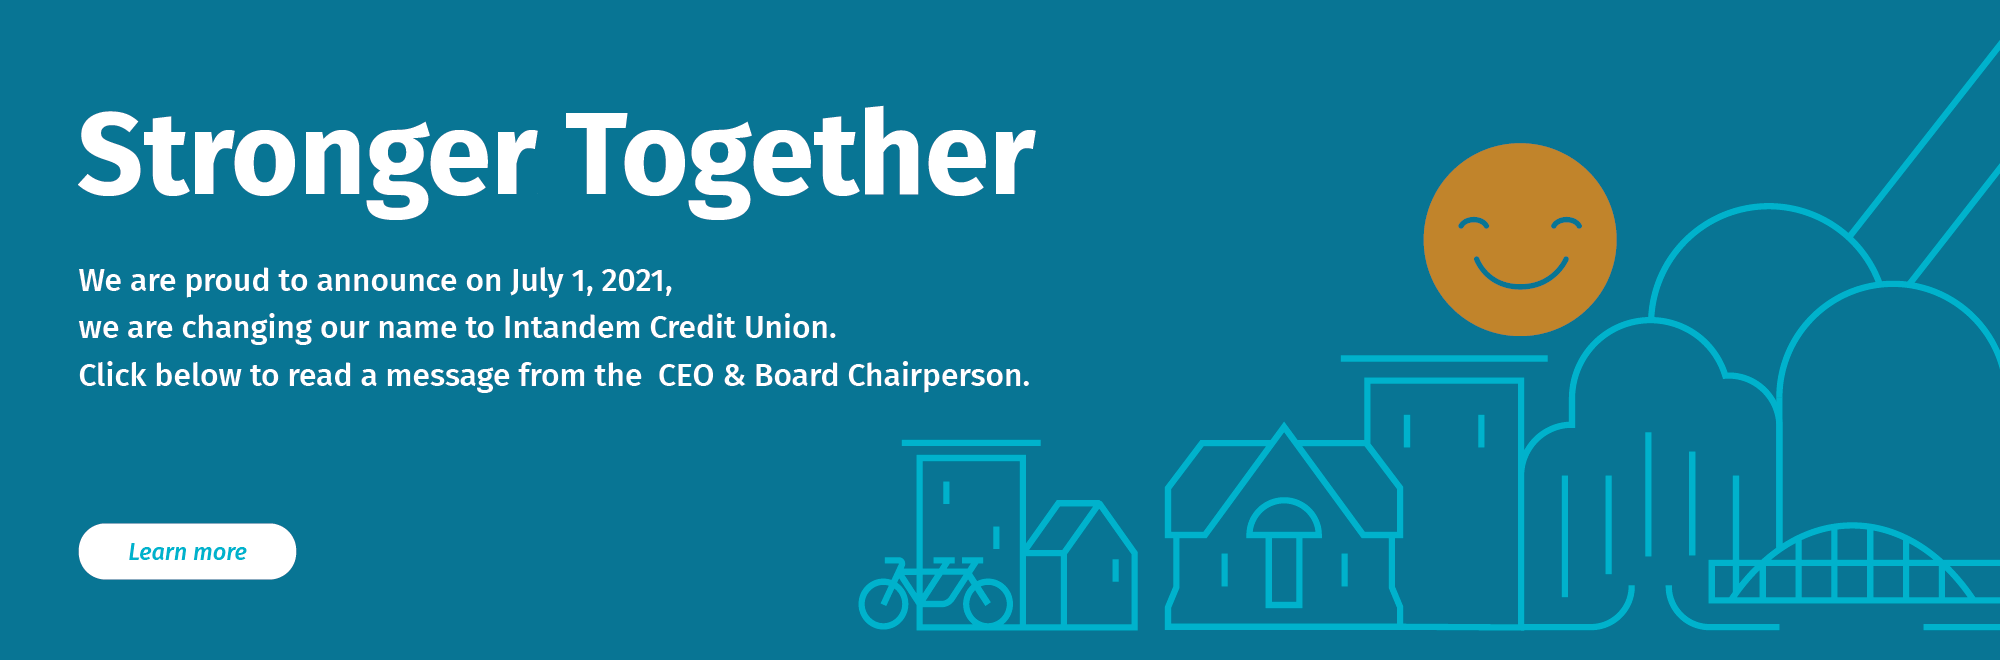 Stronger together. We are proud to announce on July 1, 2021 we are changing our name to Intandem Credit Union.